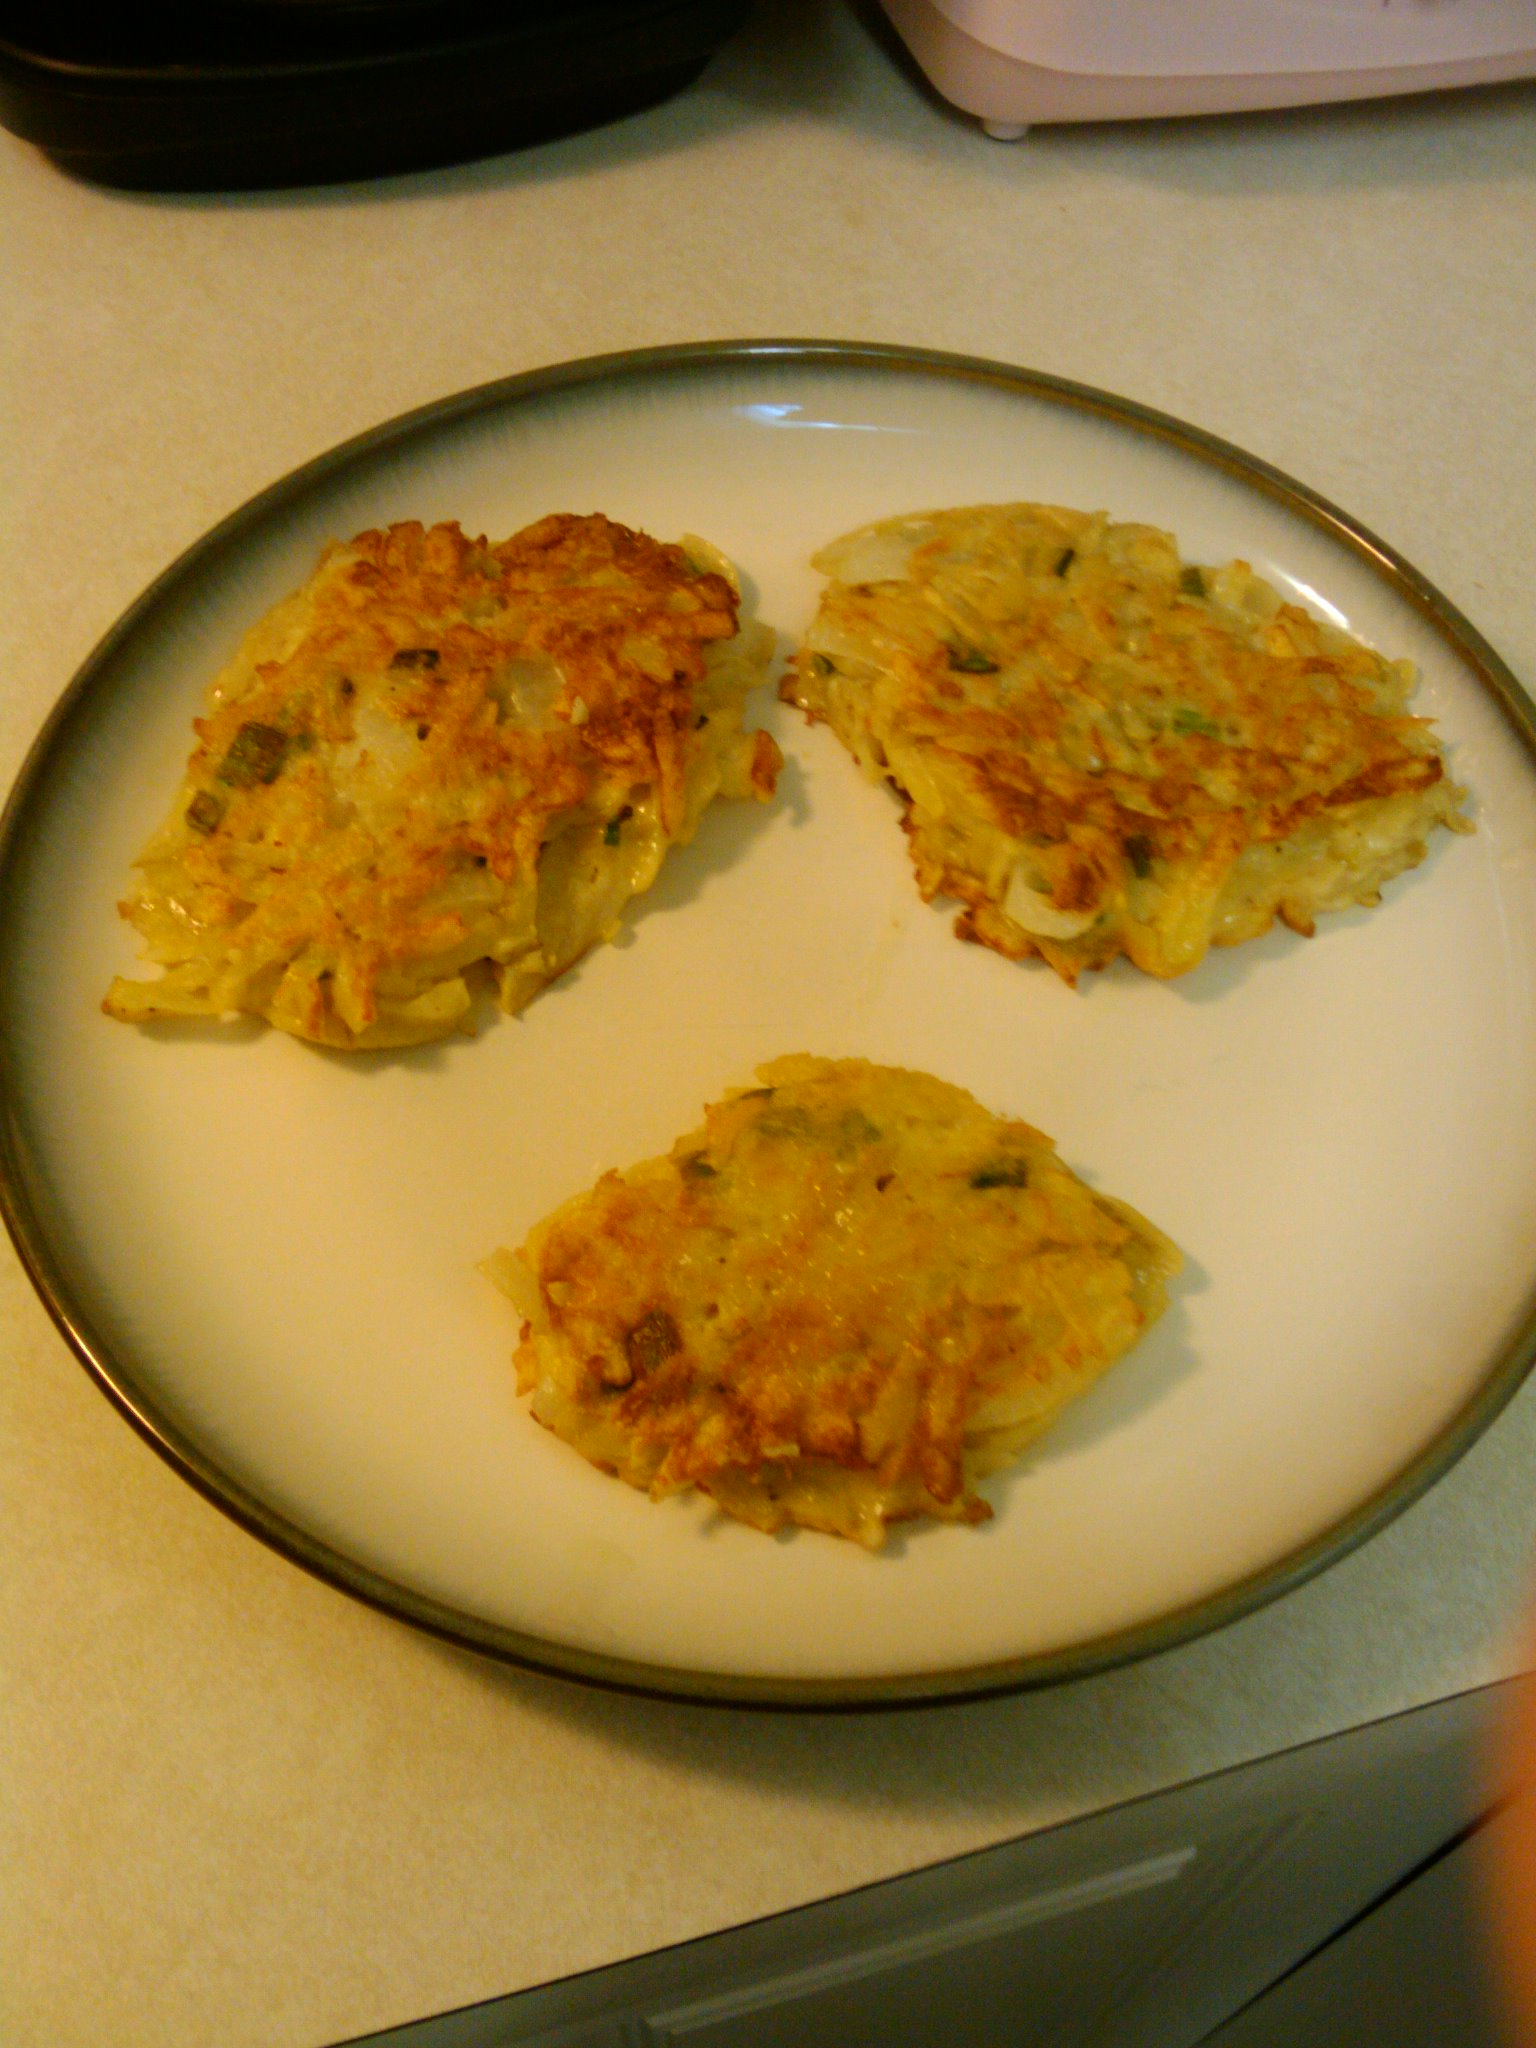 Orlando, FL :: Potato pancakes with onions, chives and spices.